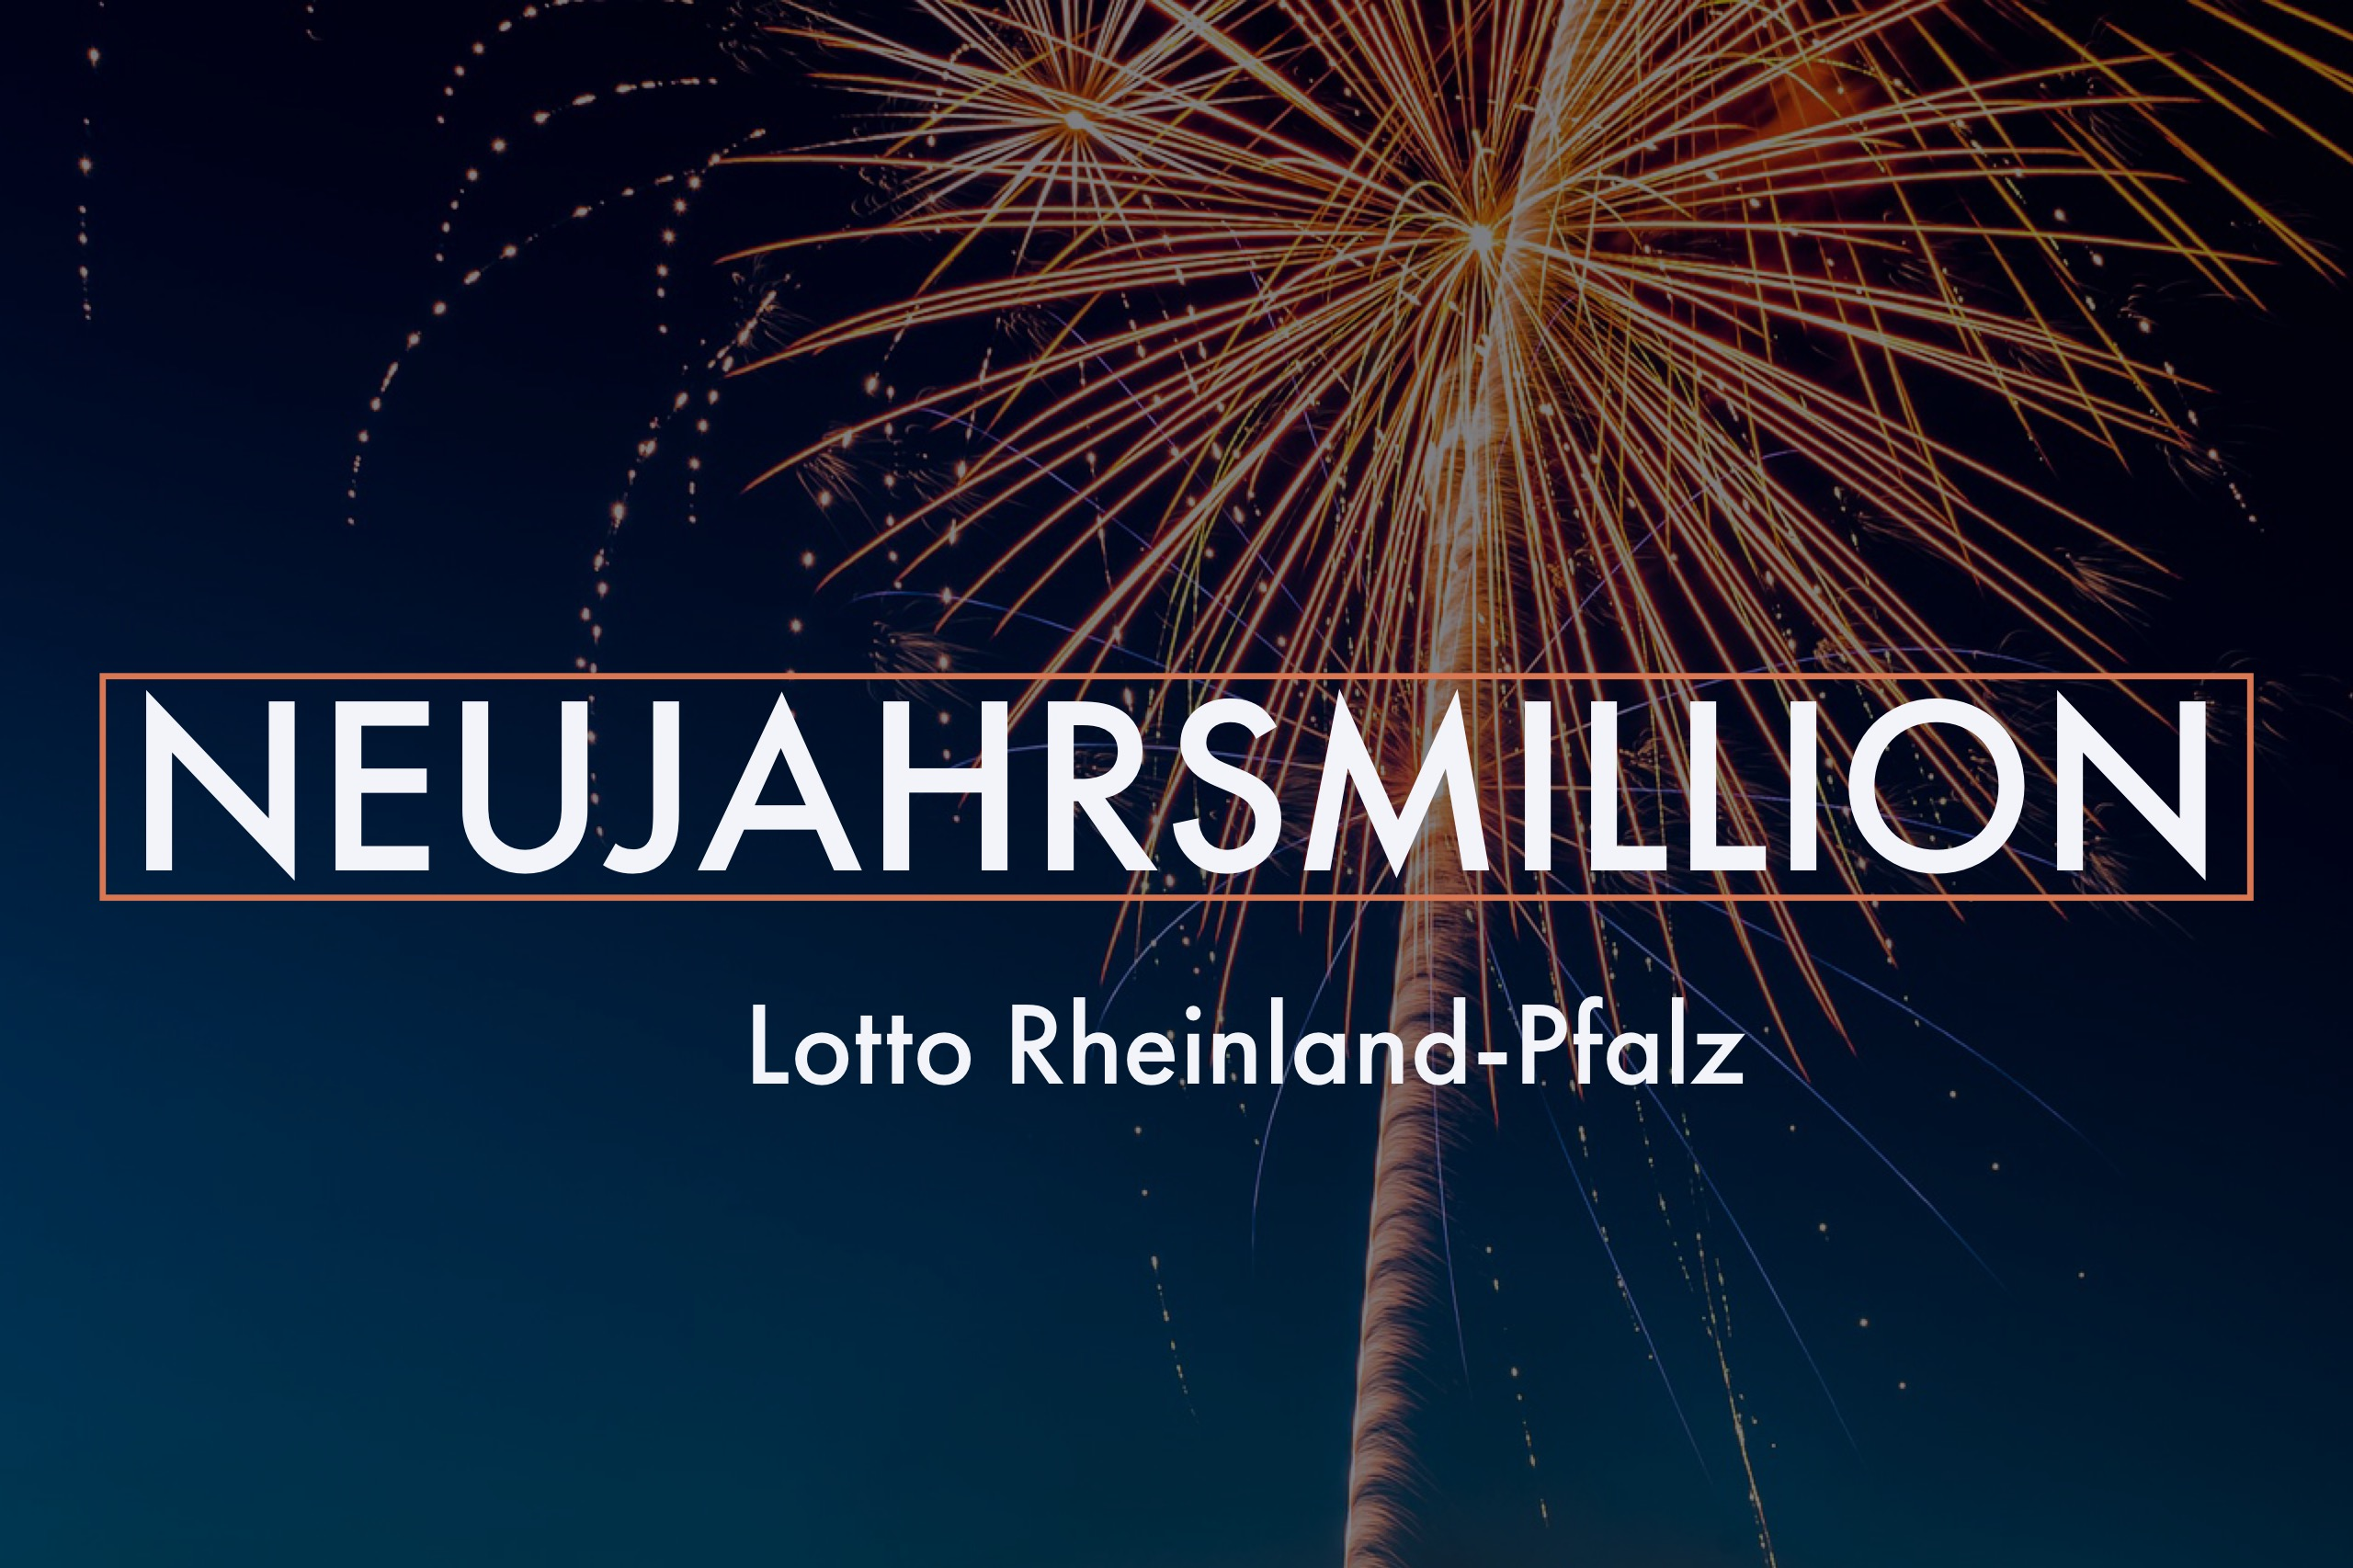 Lotto Neujahrsmillion 2020